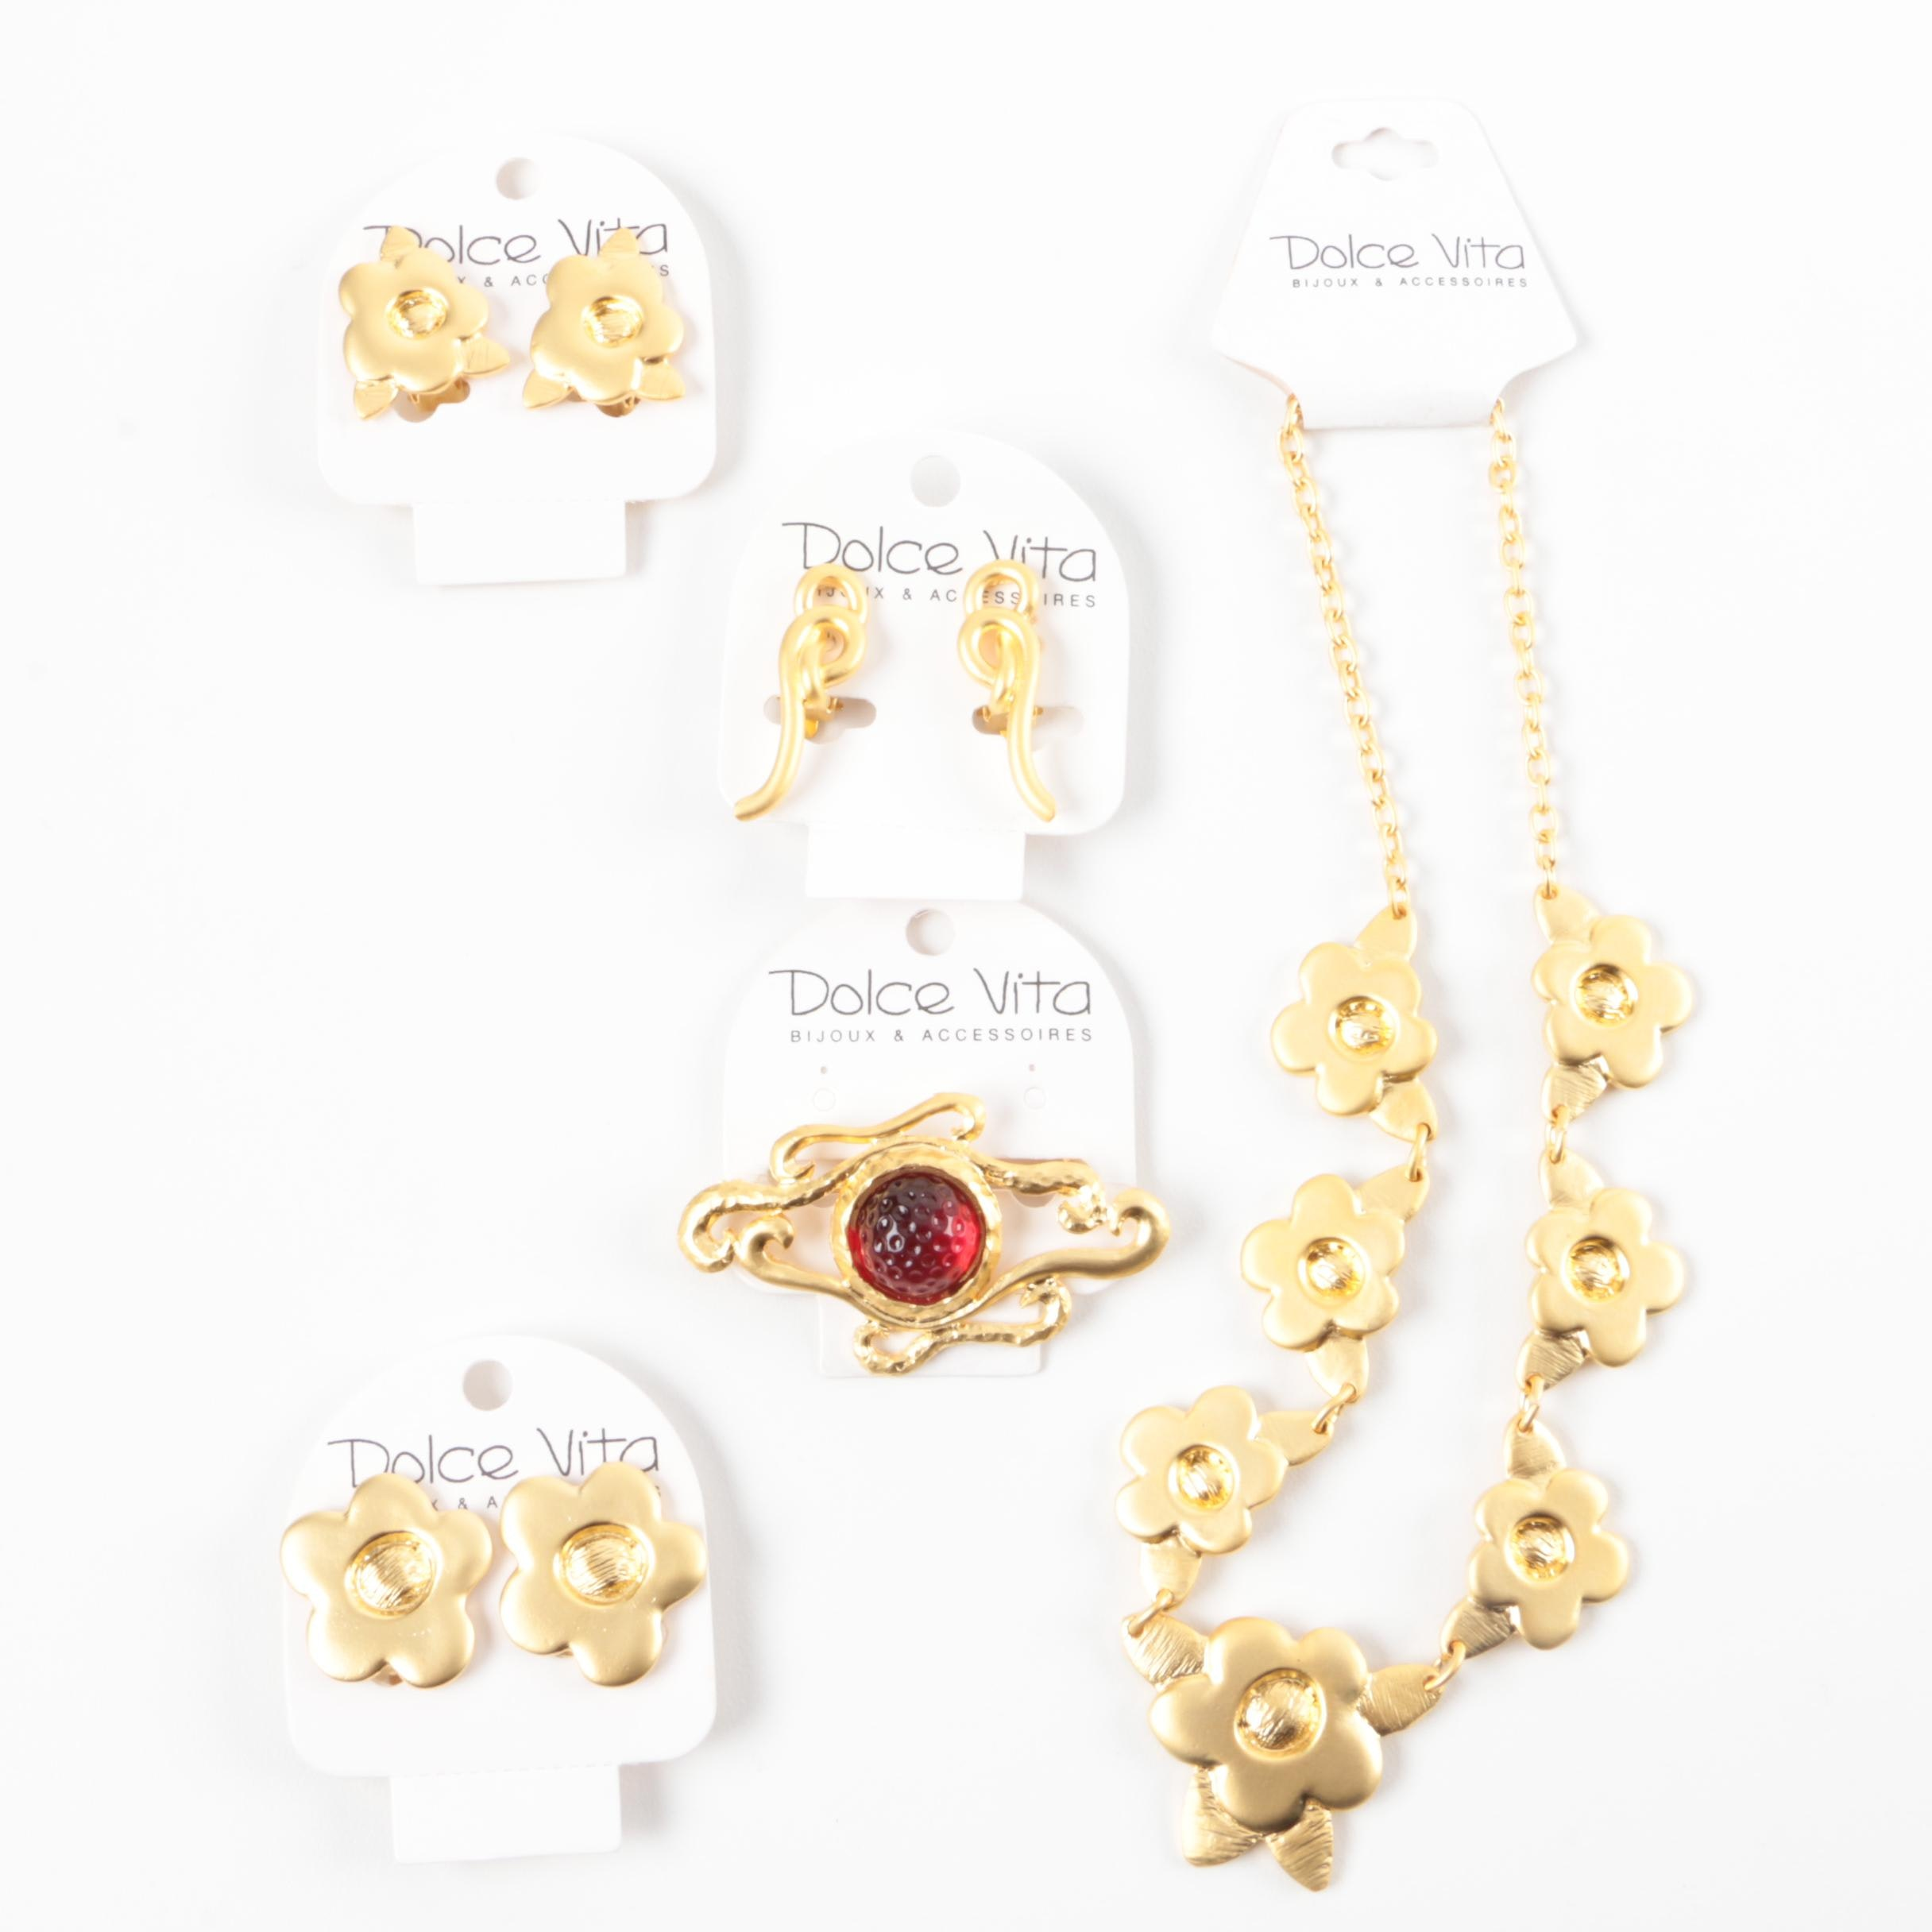 Collection of Dolce Vita Jewelry